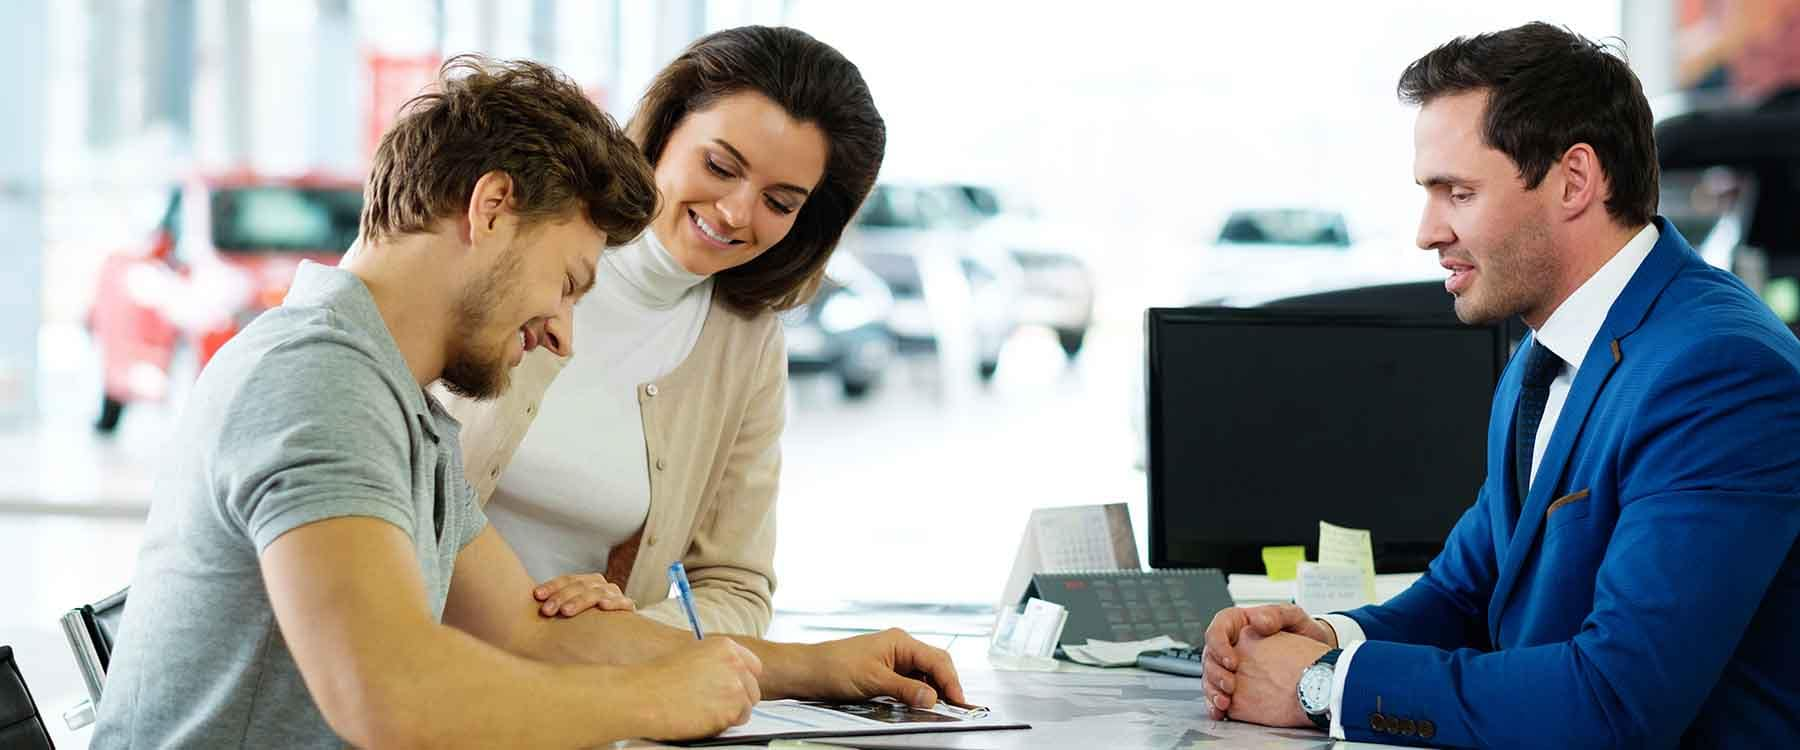 Beautiful young couple signs documents at dealership showroom